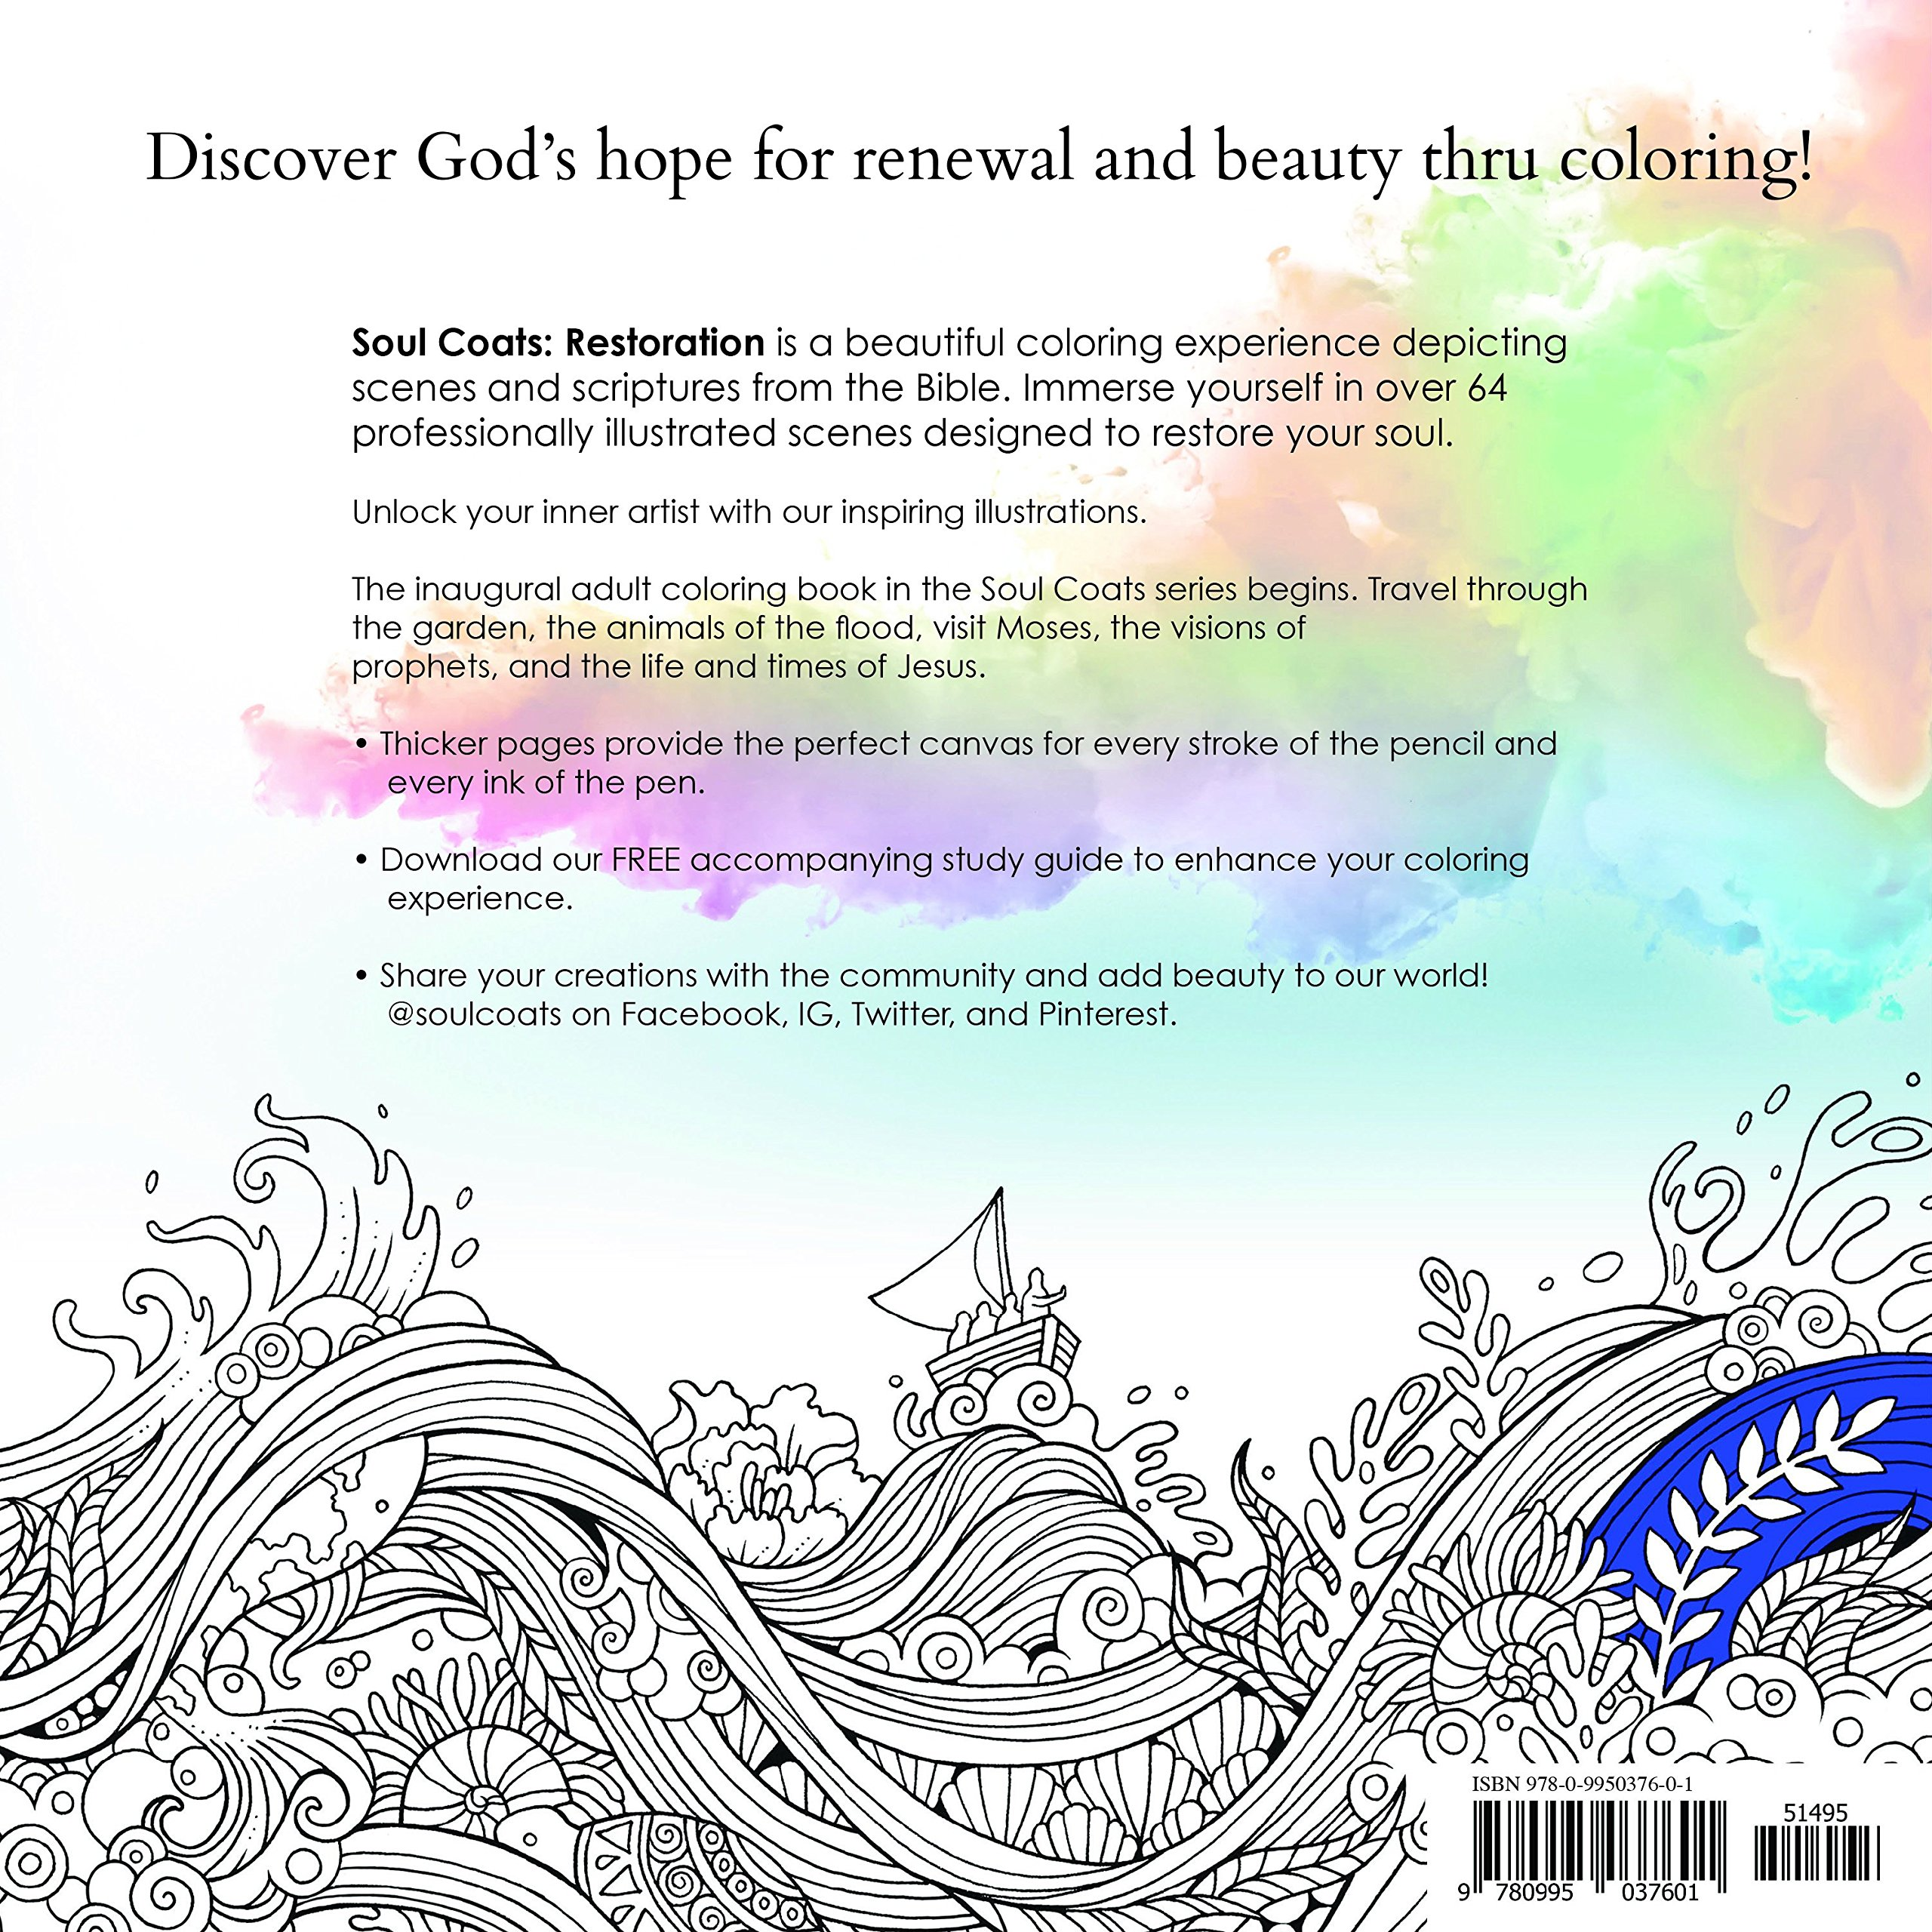 Coloring book with guide - Amazon Com Soul Coats Adult Coloring Book With Bible Scenes From The Old New Testaments And Illustrated Verses 9780995037601 Rohadi Books